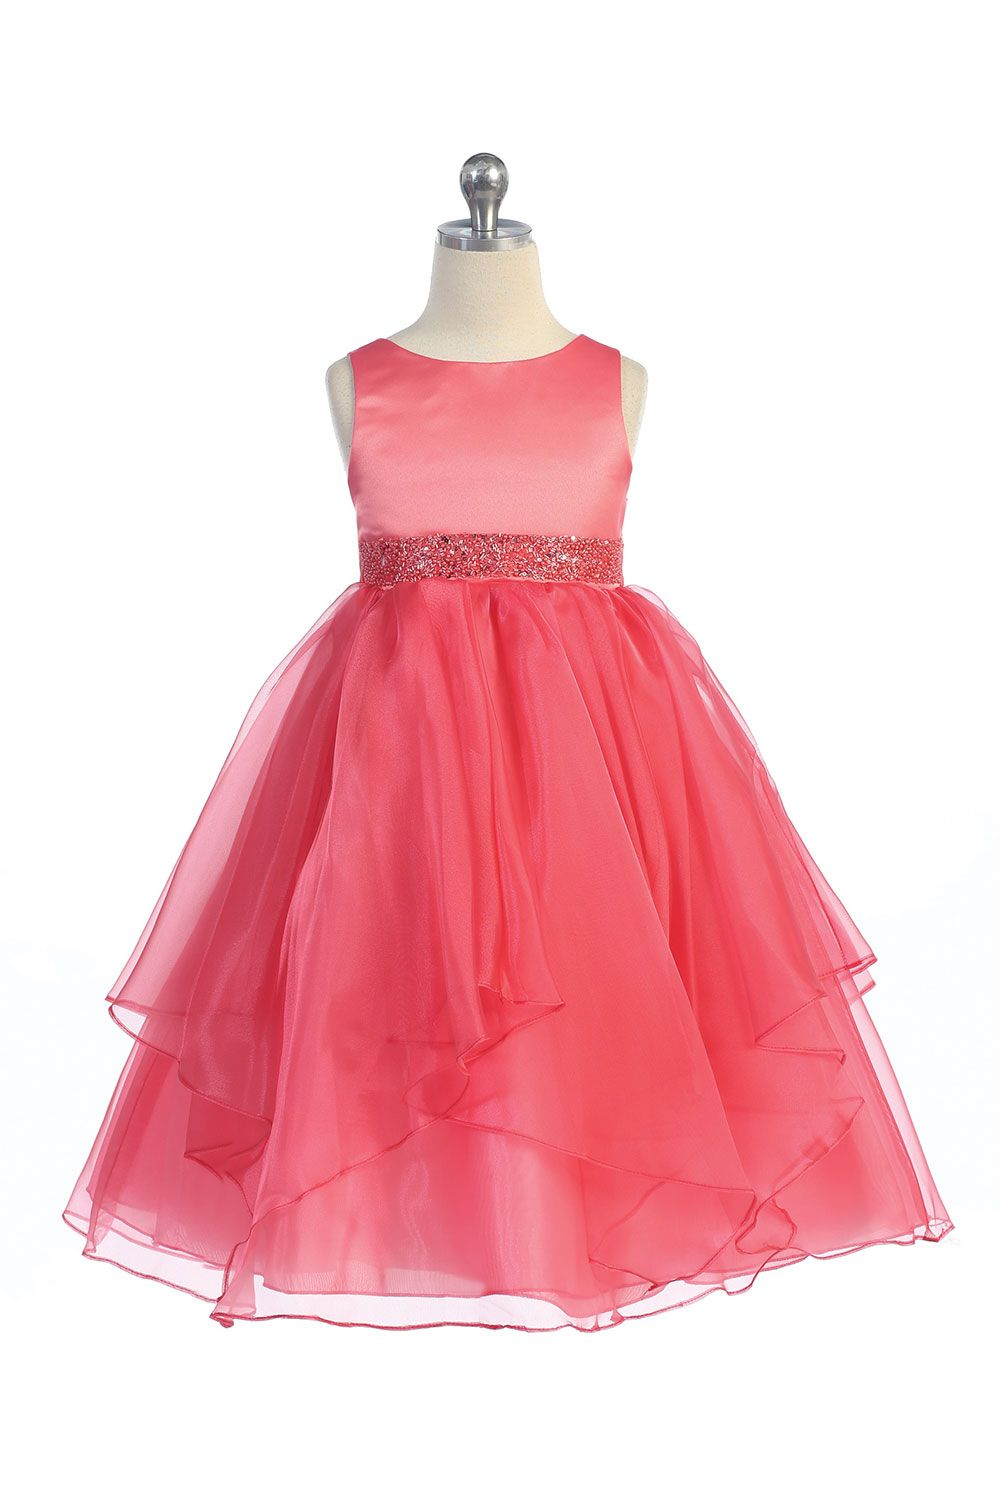 Coral Satin and Organza Layered Flower Girl Dress - for Bella ...